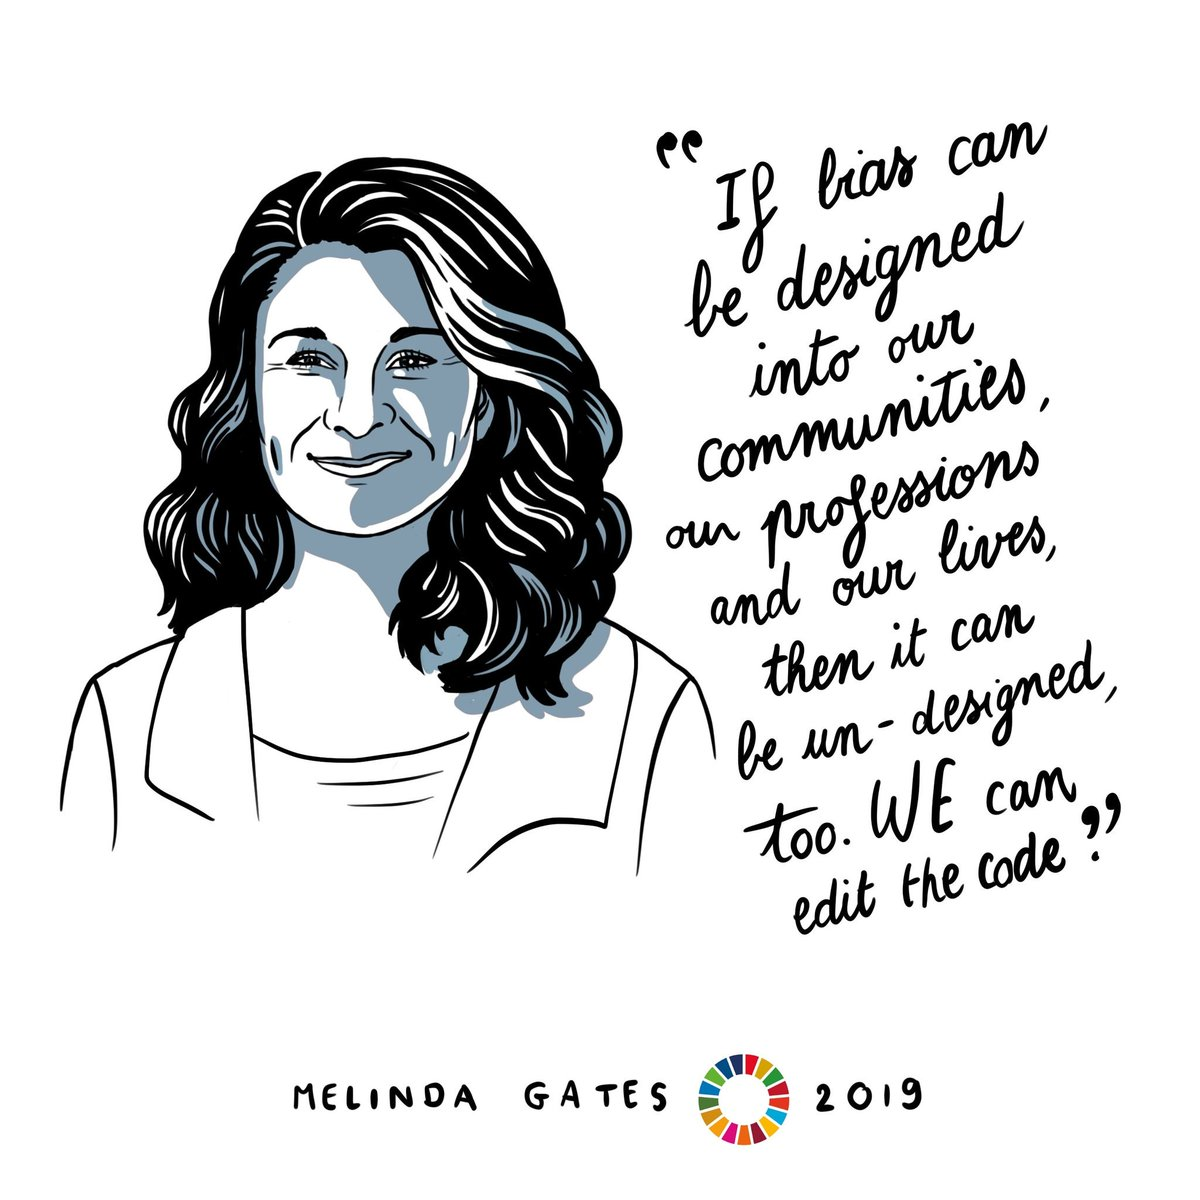 Some #WednesdayWisdom from @melindagates at this year's #Goalkeepers19 on how we CAN change biases 🙌